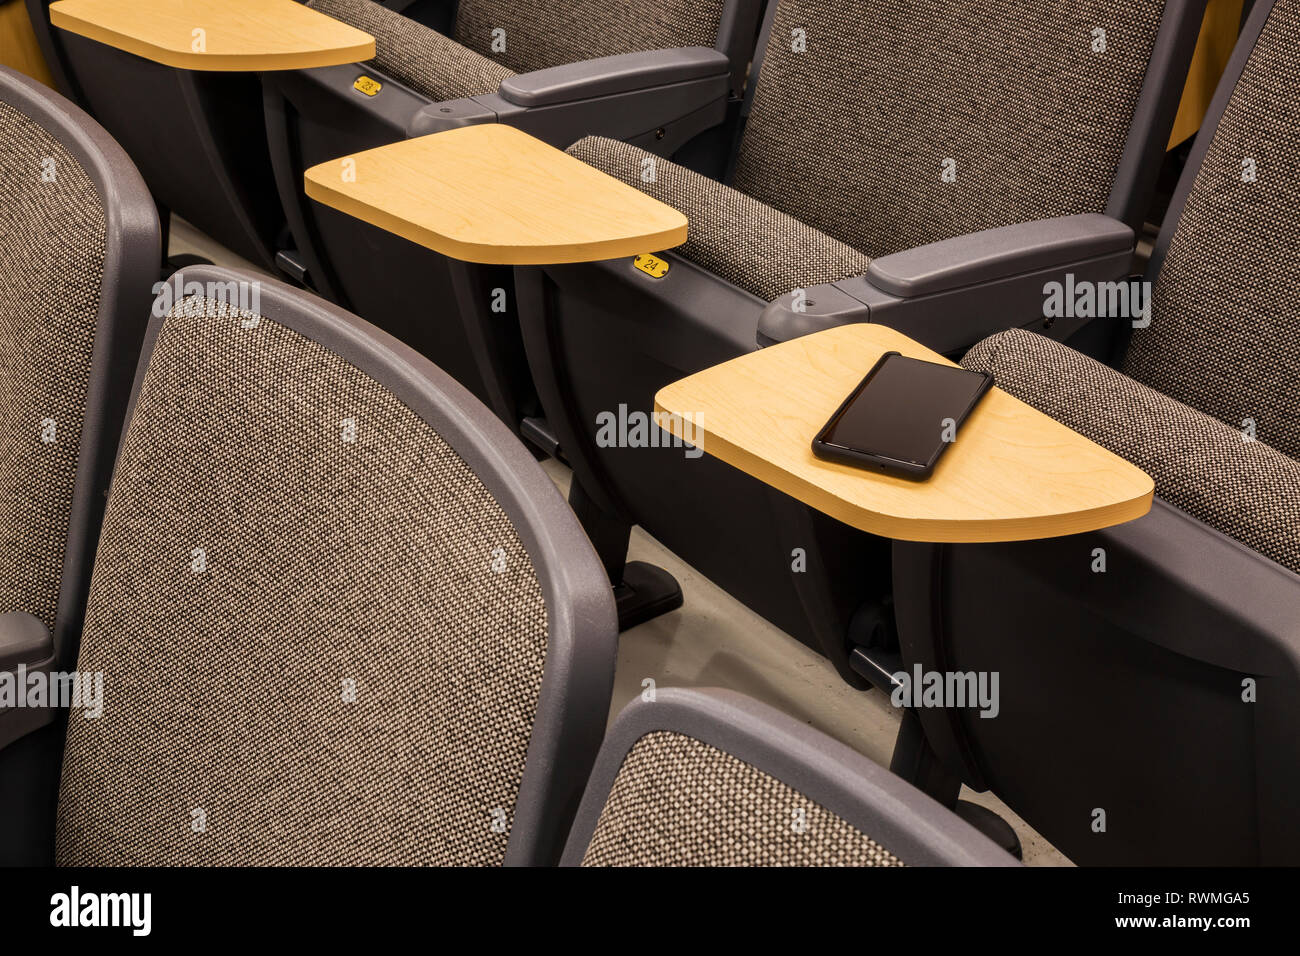 Cell phone on a student's desk in an empty college lecture hall; Connecticut, United States of America - Stock Image